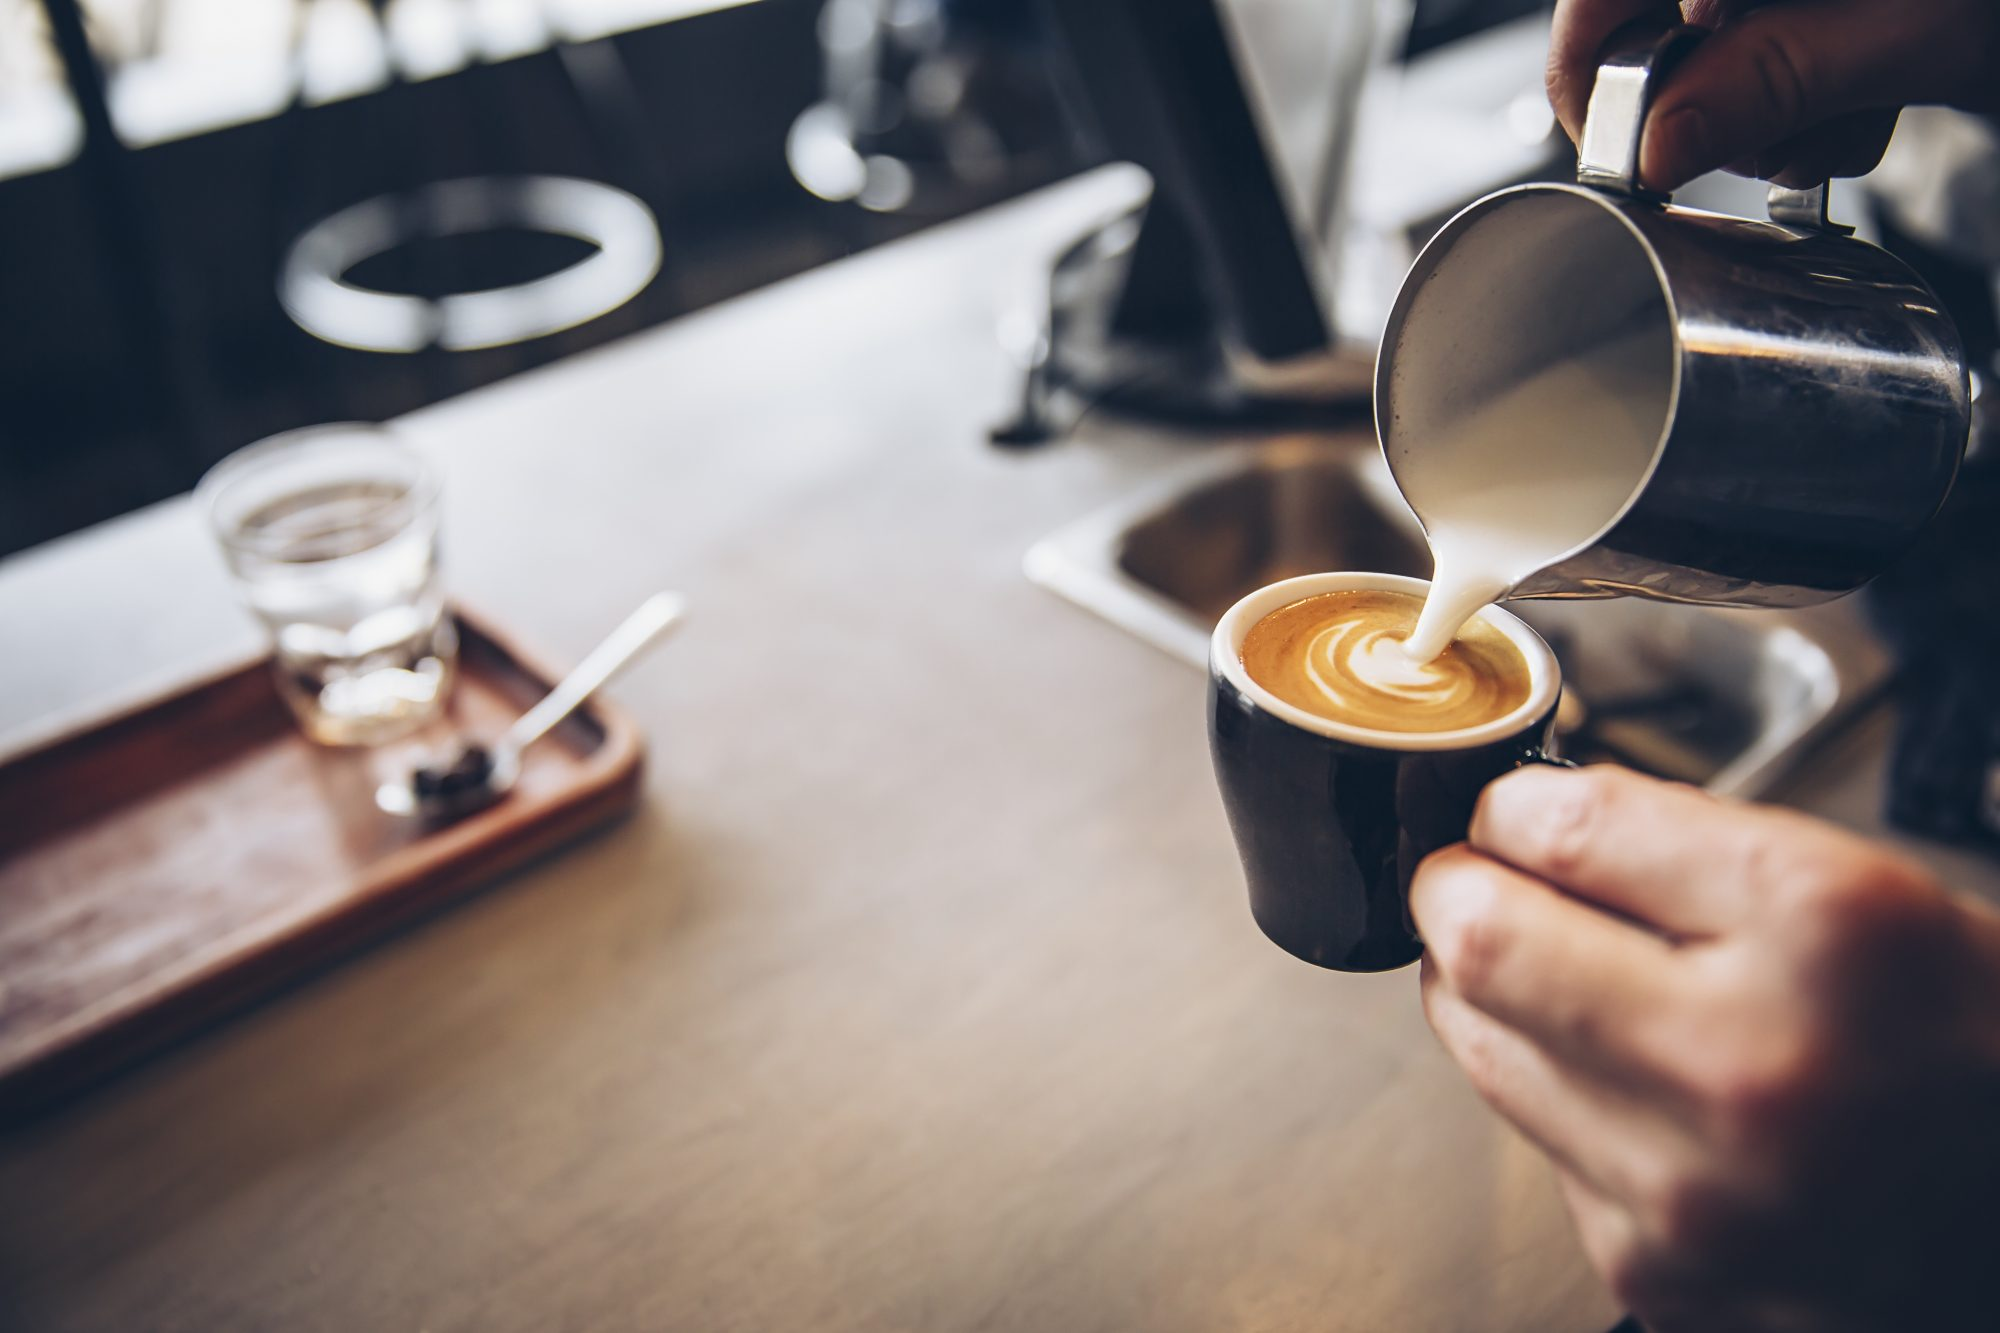 barista pouring coffee in cafe